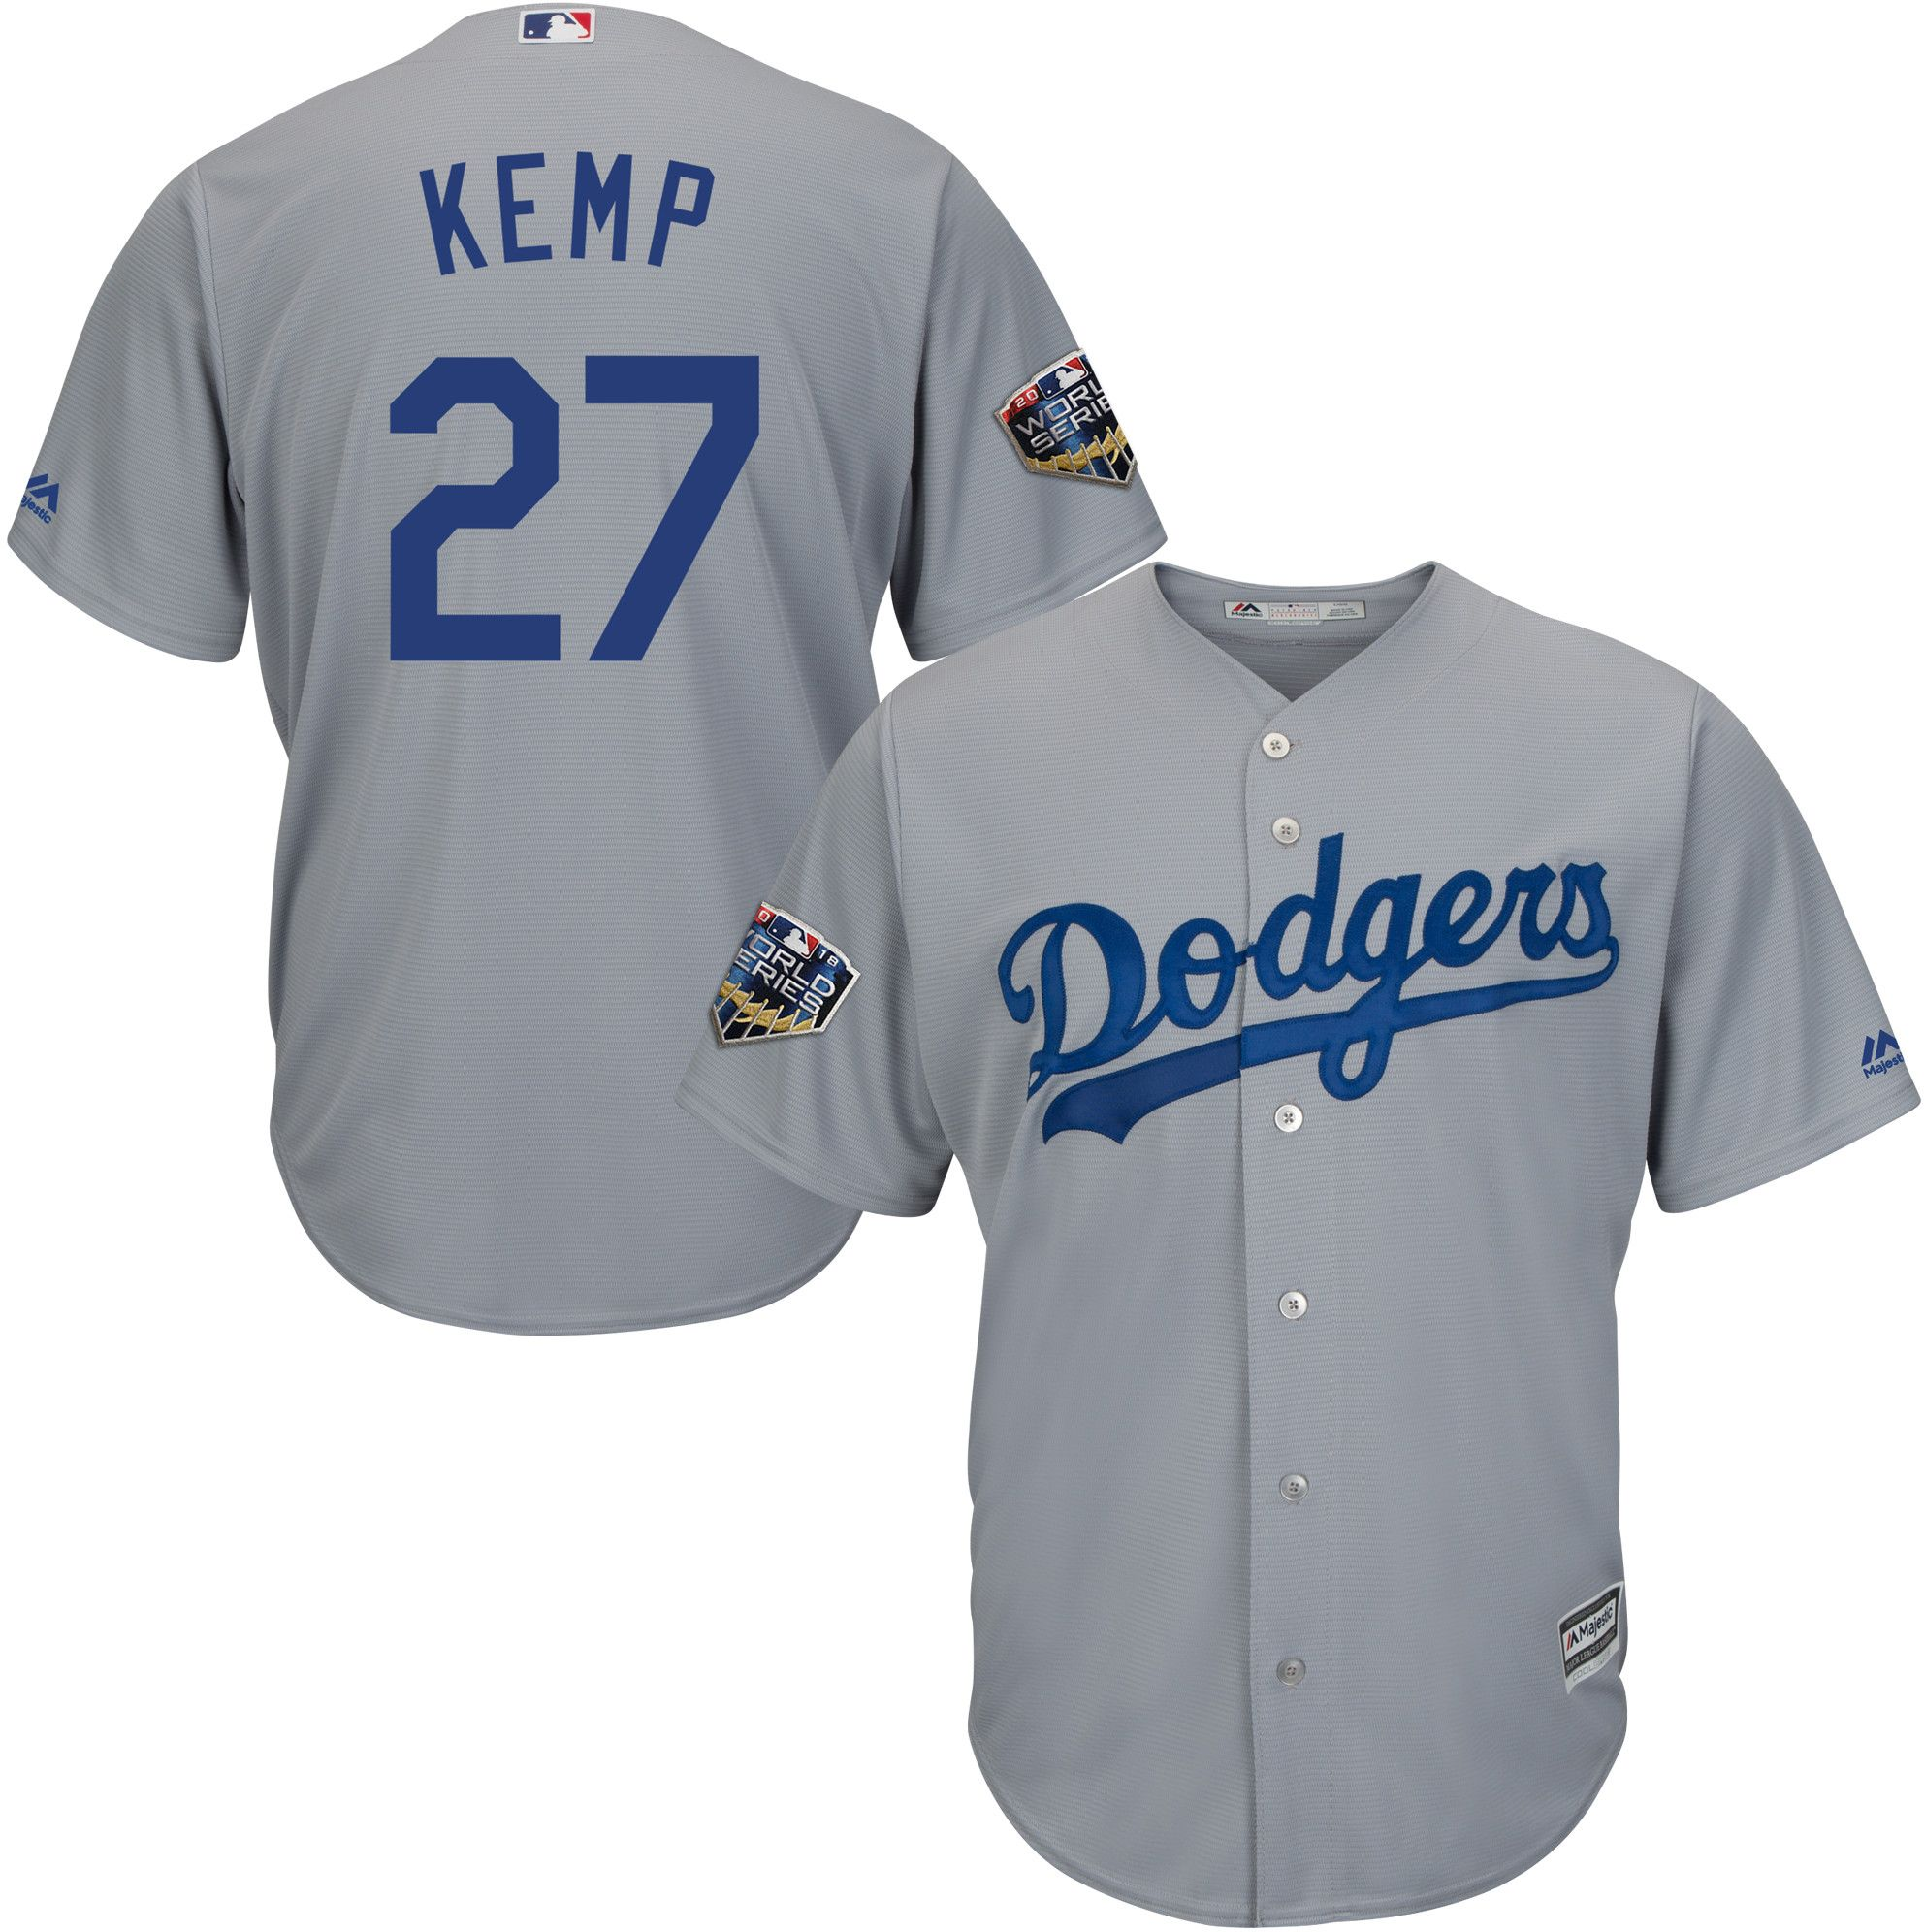 Sport Dodgers Matt Kemp 27 Blau Mlb Baseball T-shirt Los Angeles L.a